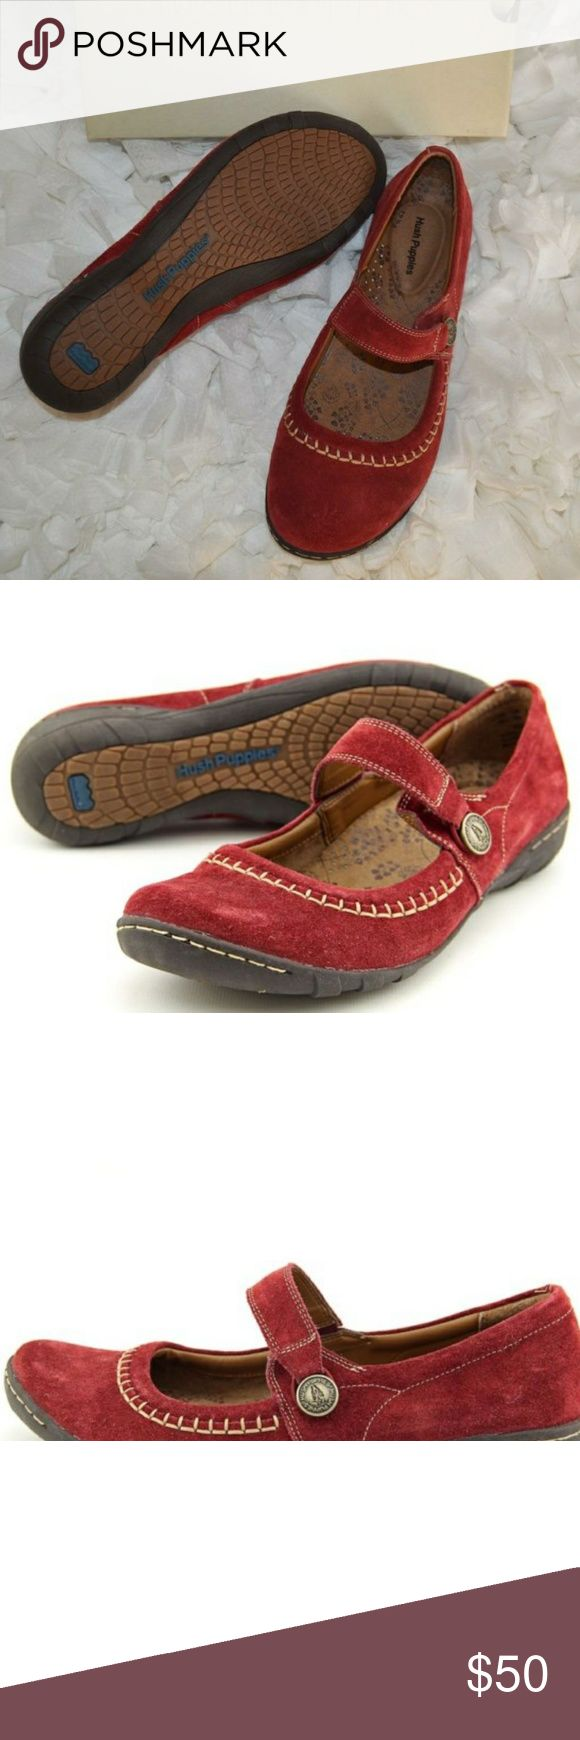 """Hush Puppies Gyneth women slip on loafer New with box. Dark red suede slip on loafers. Heel measures approx. 1.25"""". Molded and contoured extra cushioned ethylene vinyl acetate footbed and extra heel foam. Rubber outsole. Hush Puppies Shoes Flats & Loafers"""